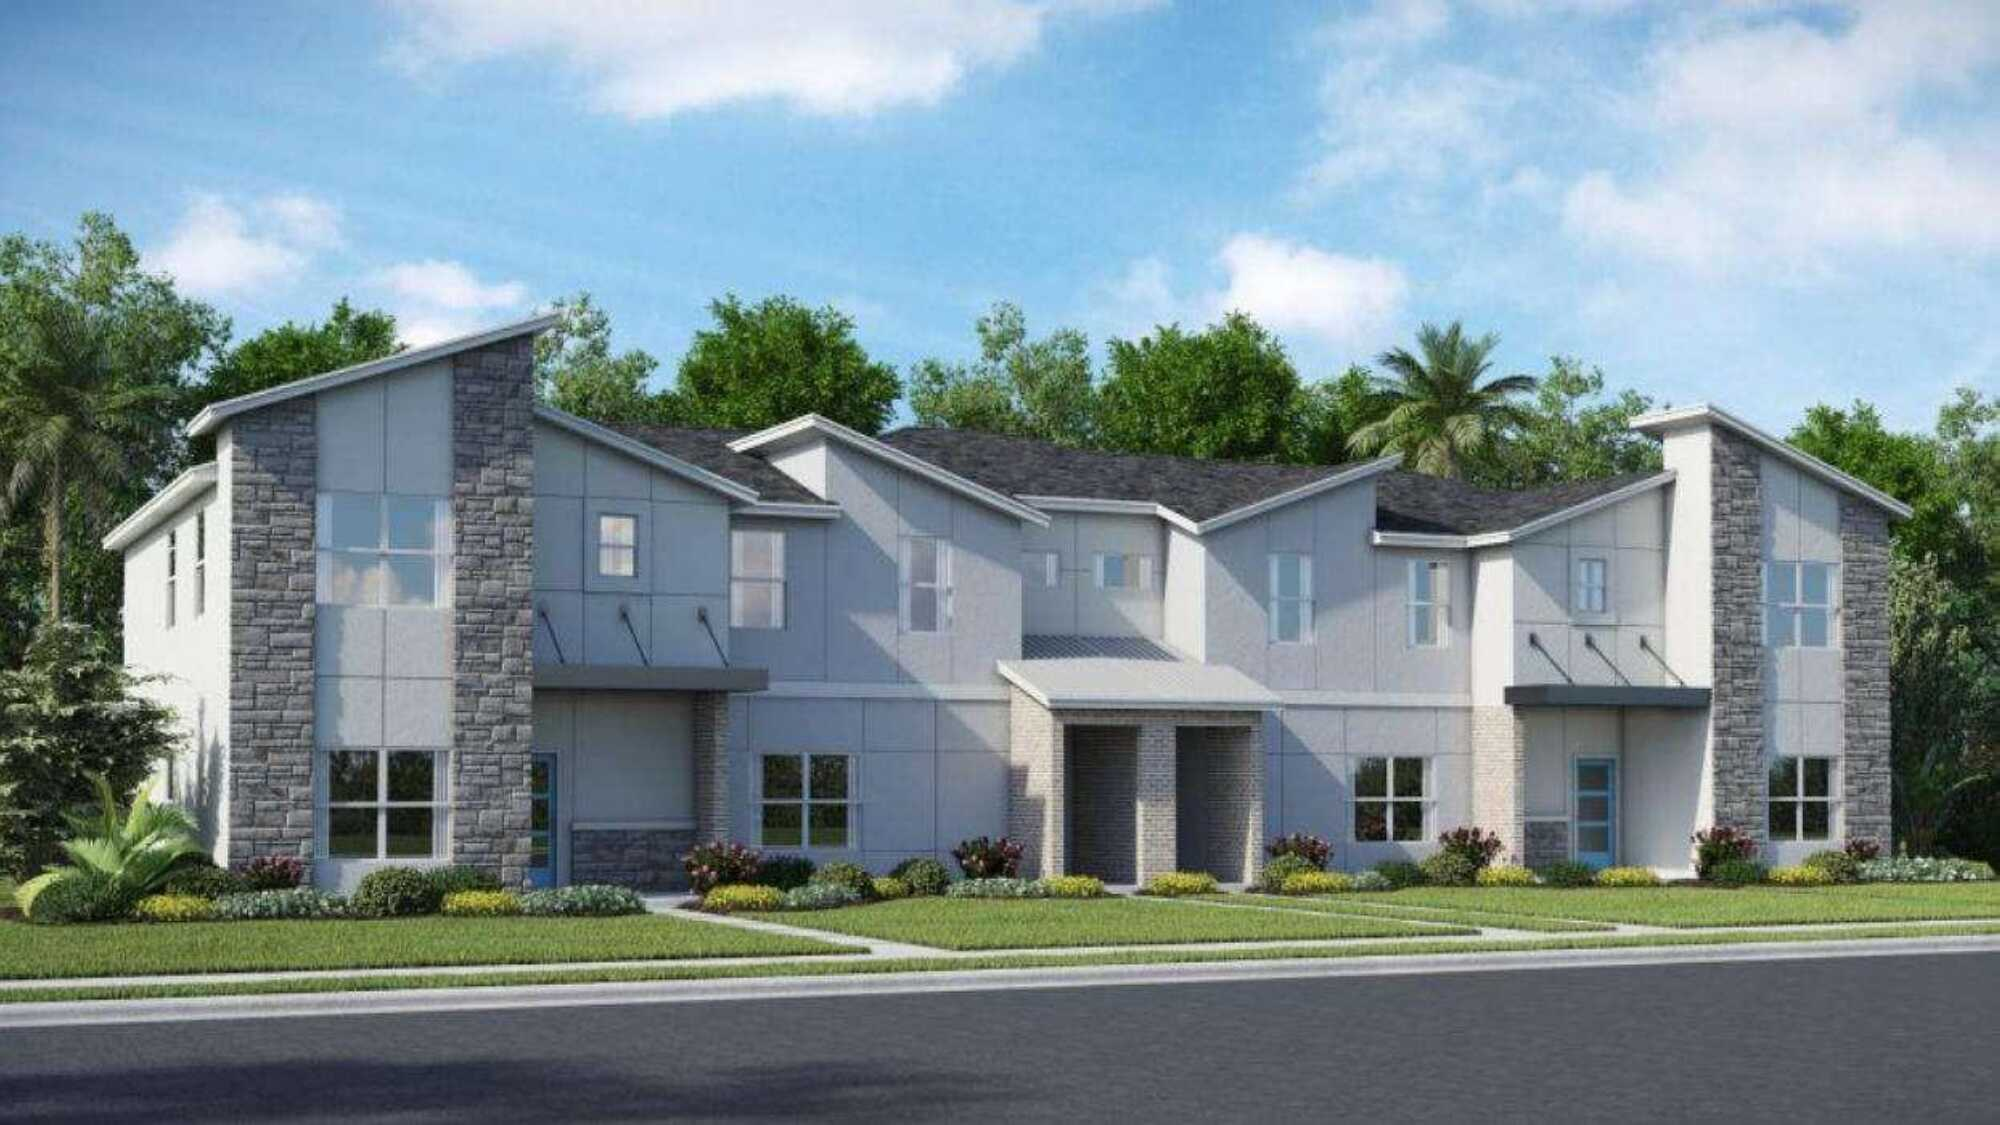 pag-orla-sl-townhomes_compressed-1_page-0014_optimized